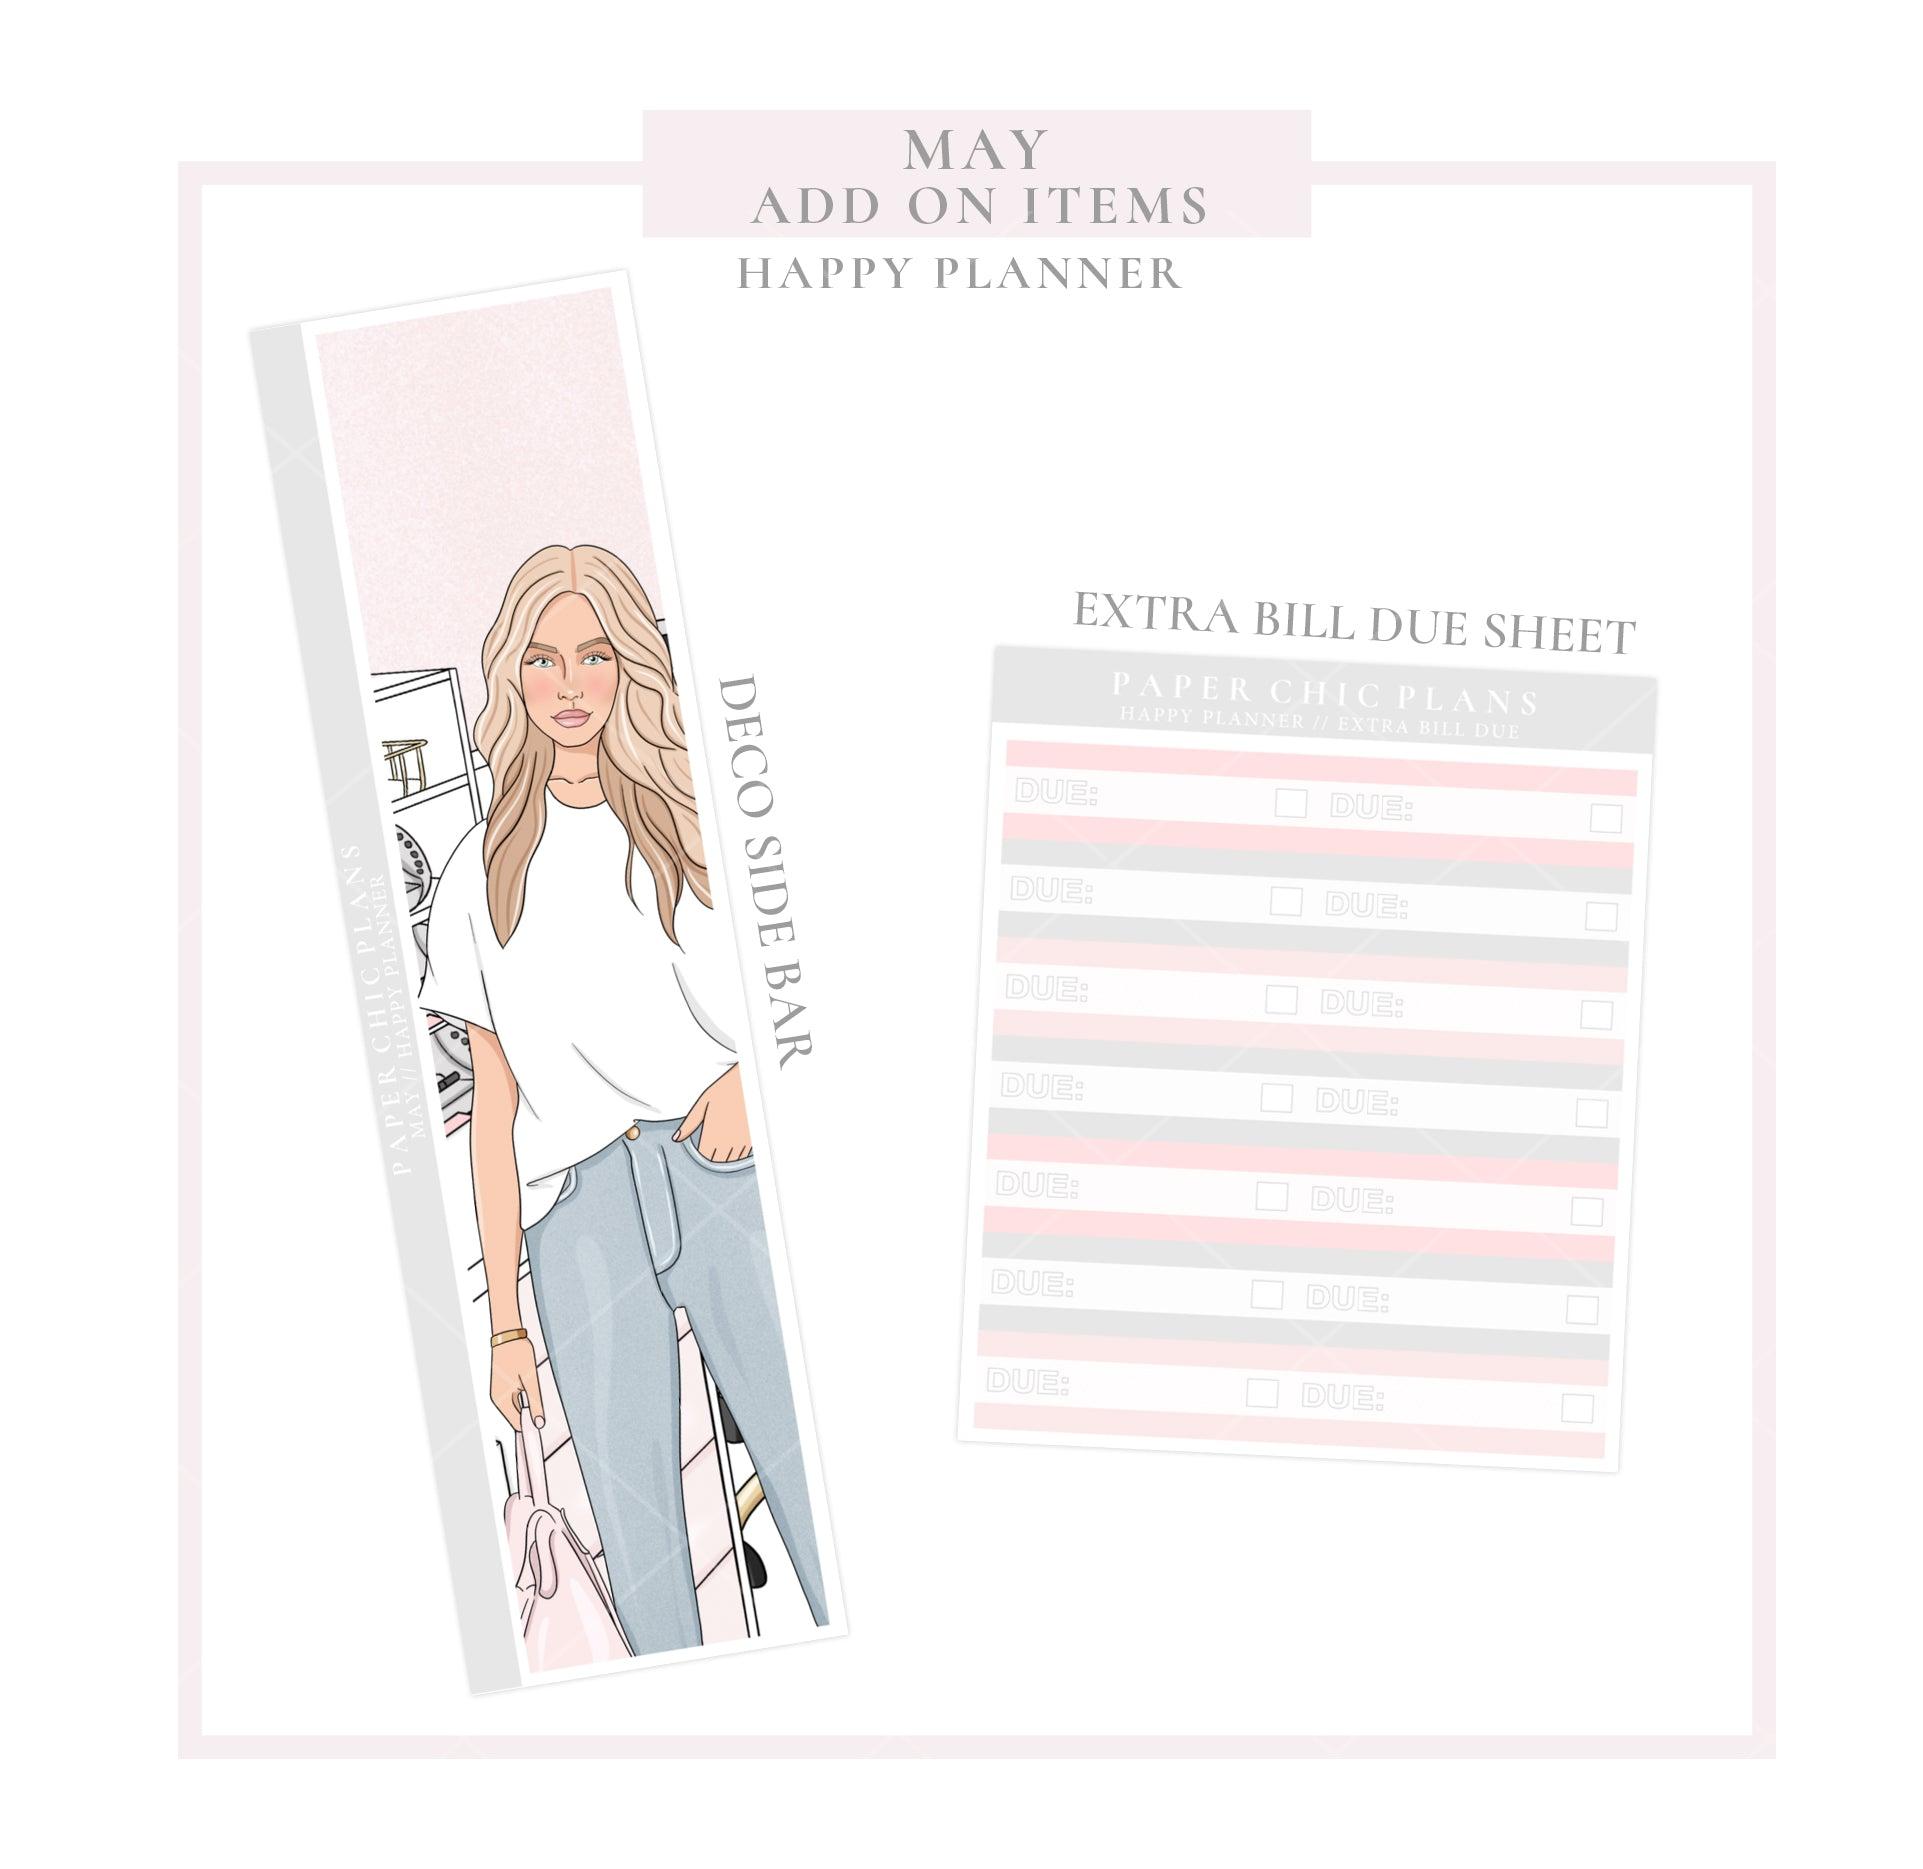 May // ADD ON ITEMS // Happy Planner Classic Monthly Planner Kit